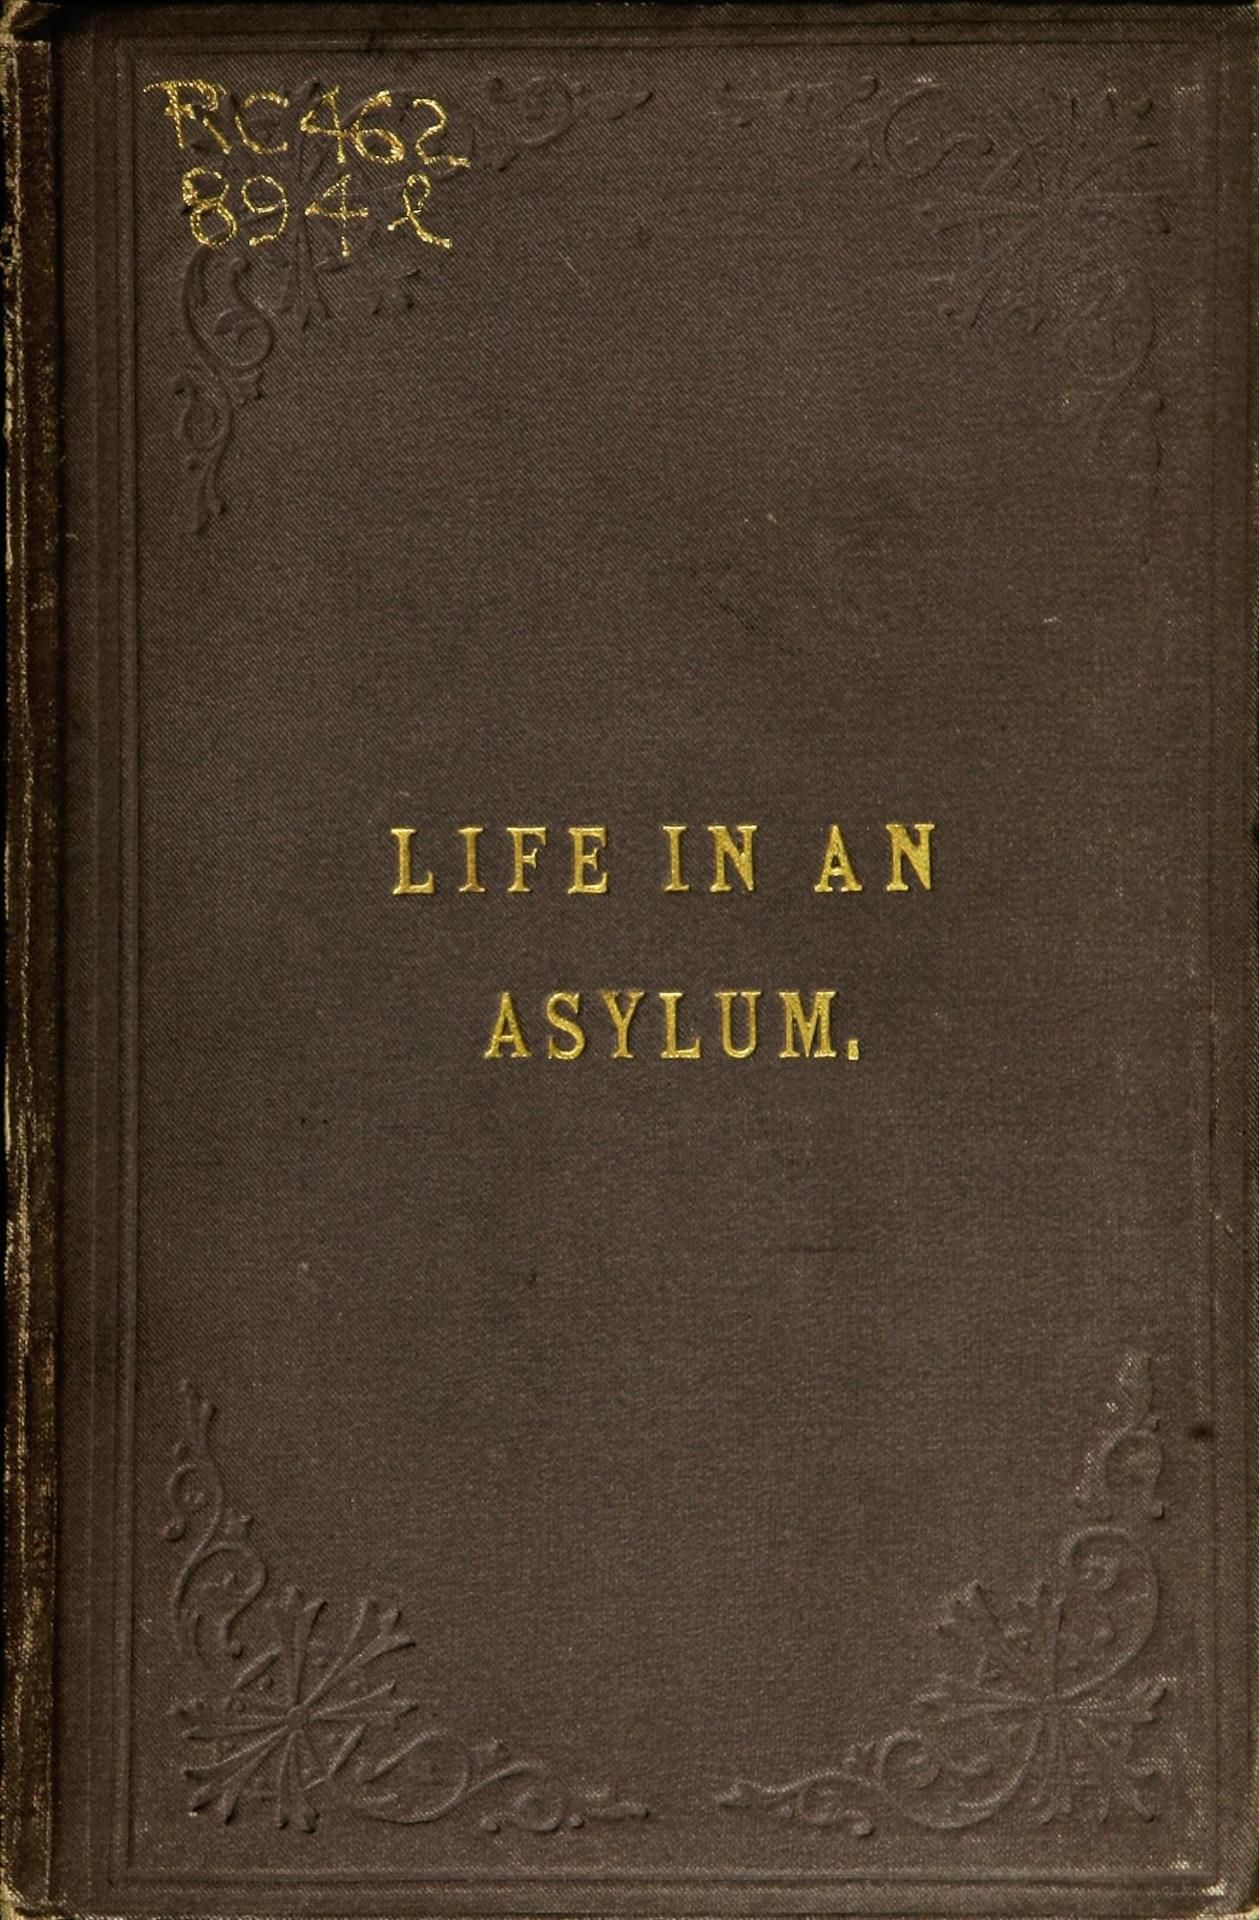 Photo of Life in an asylum: strange stories, saying and doings of madmen : Free Download, Borrow, and Streaming : Internet Archive